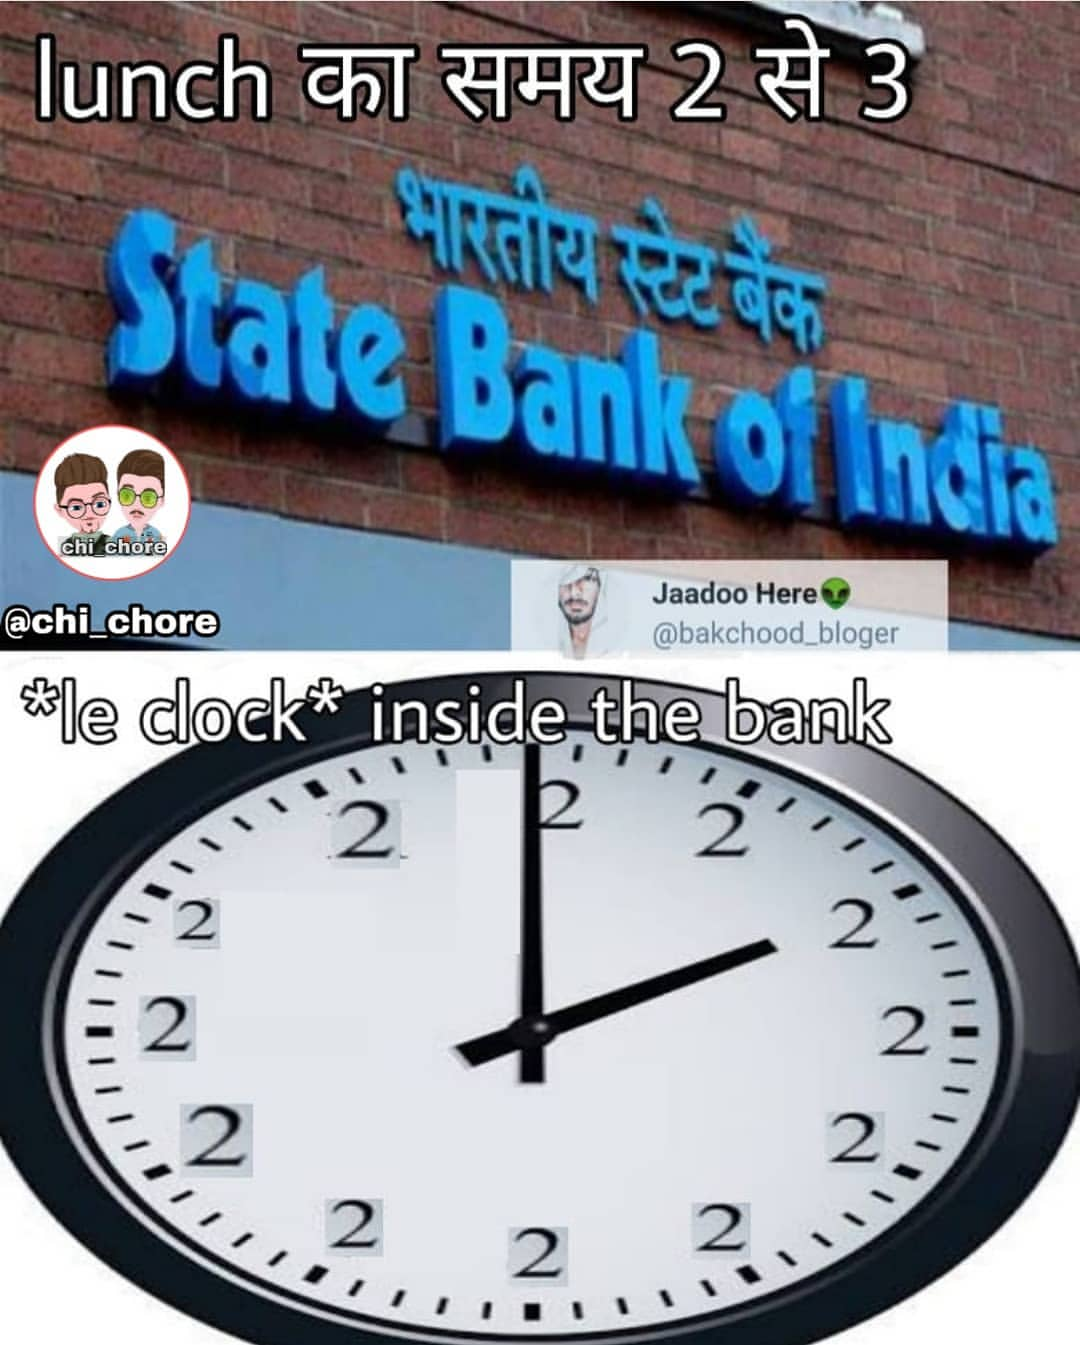 State Bank Of India Le Clock Inside The Bank Meme Hindi Memes